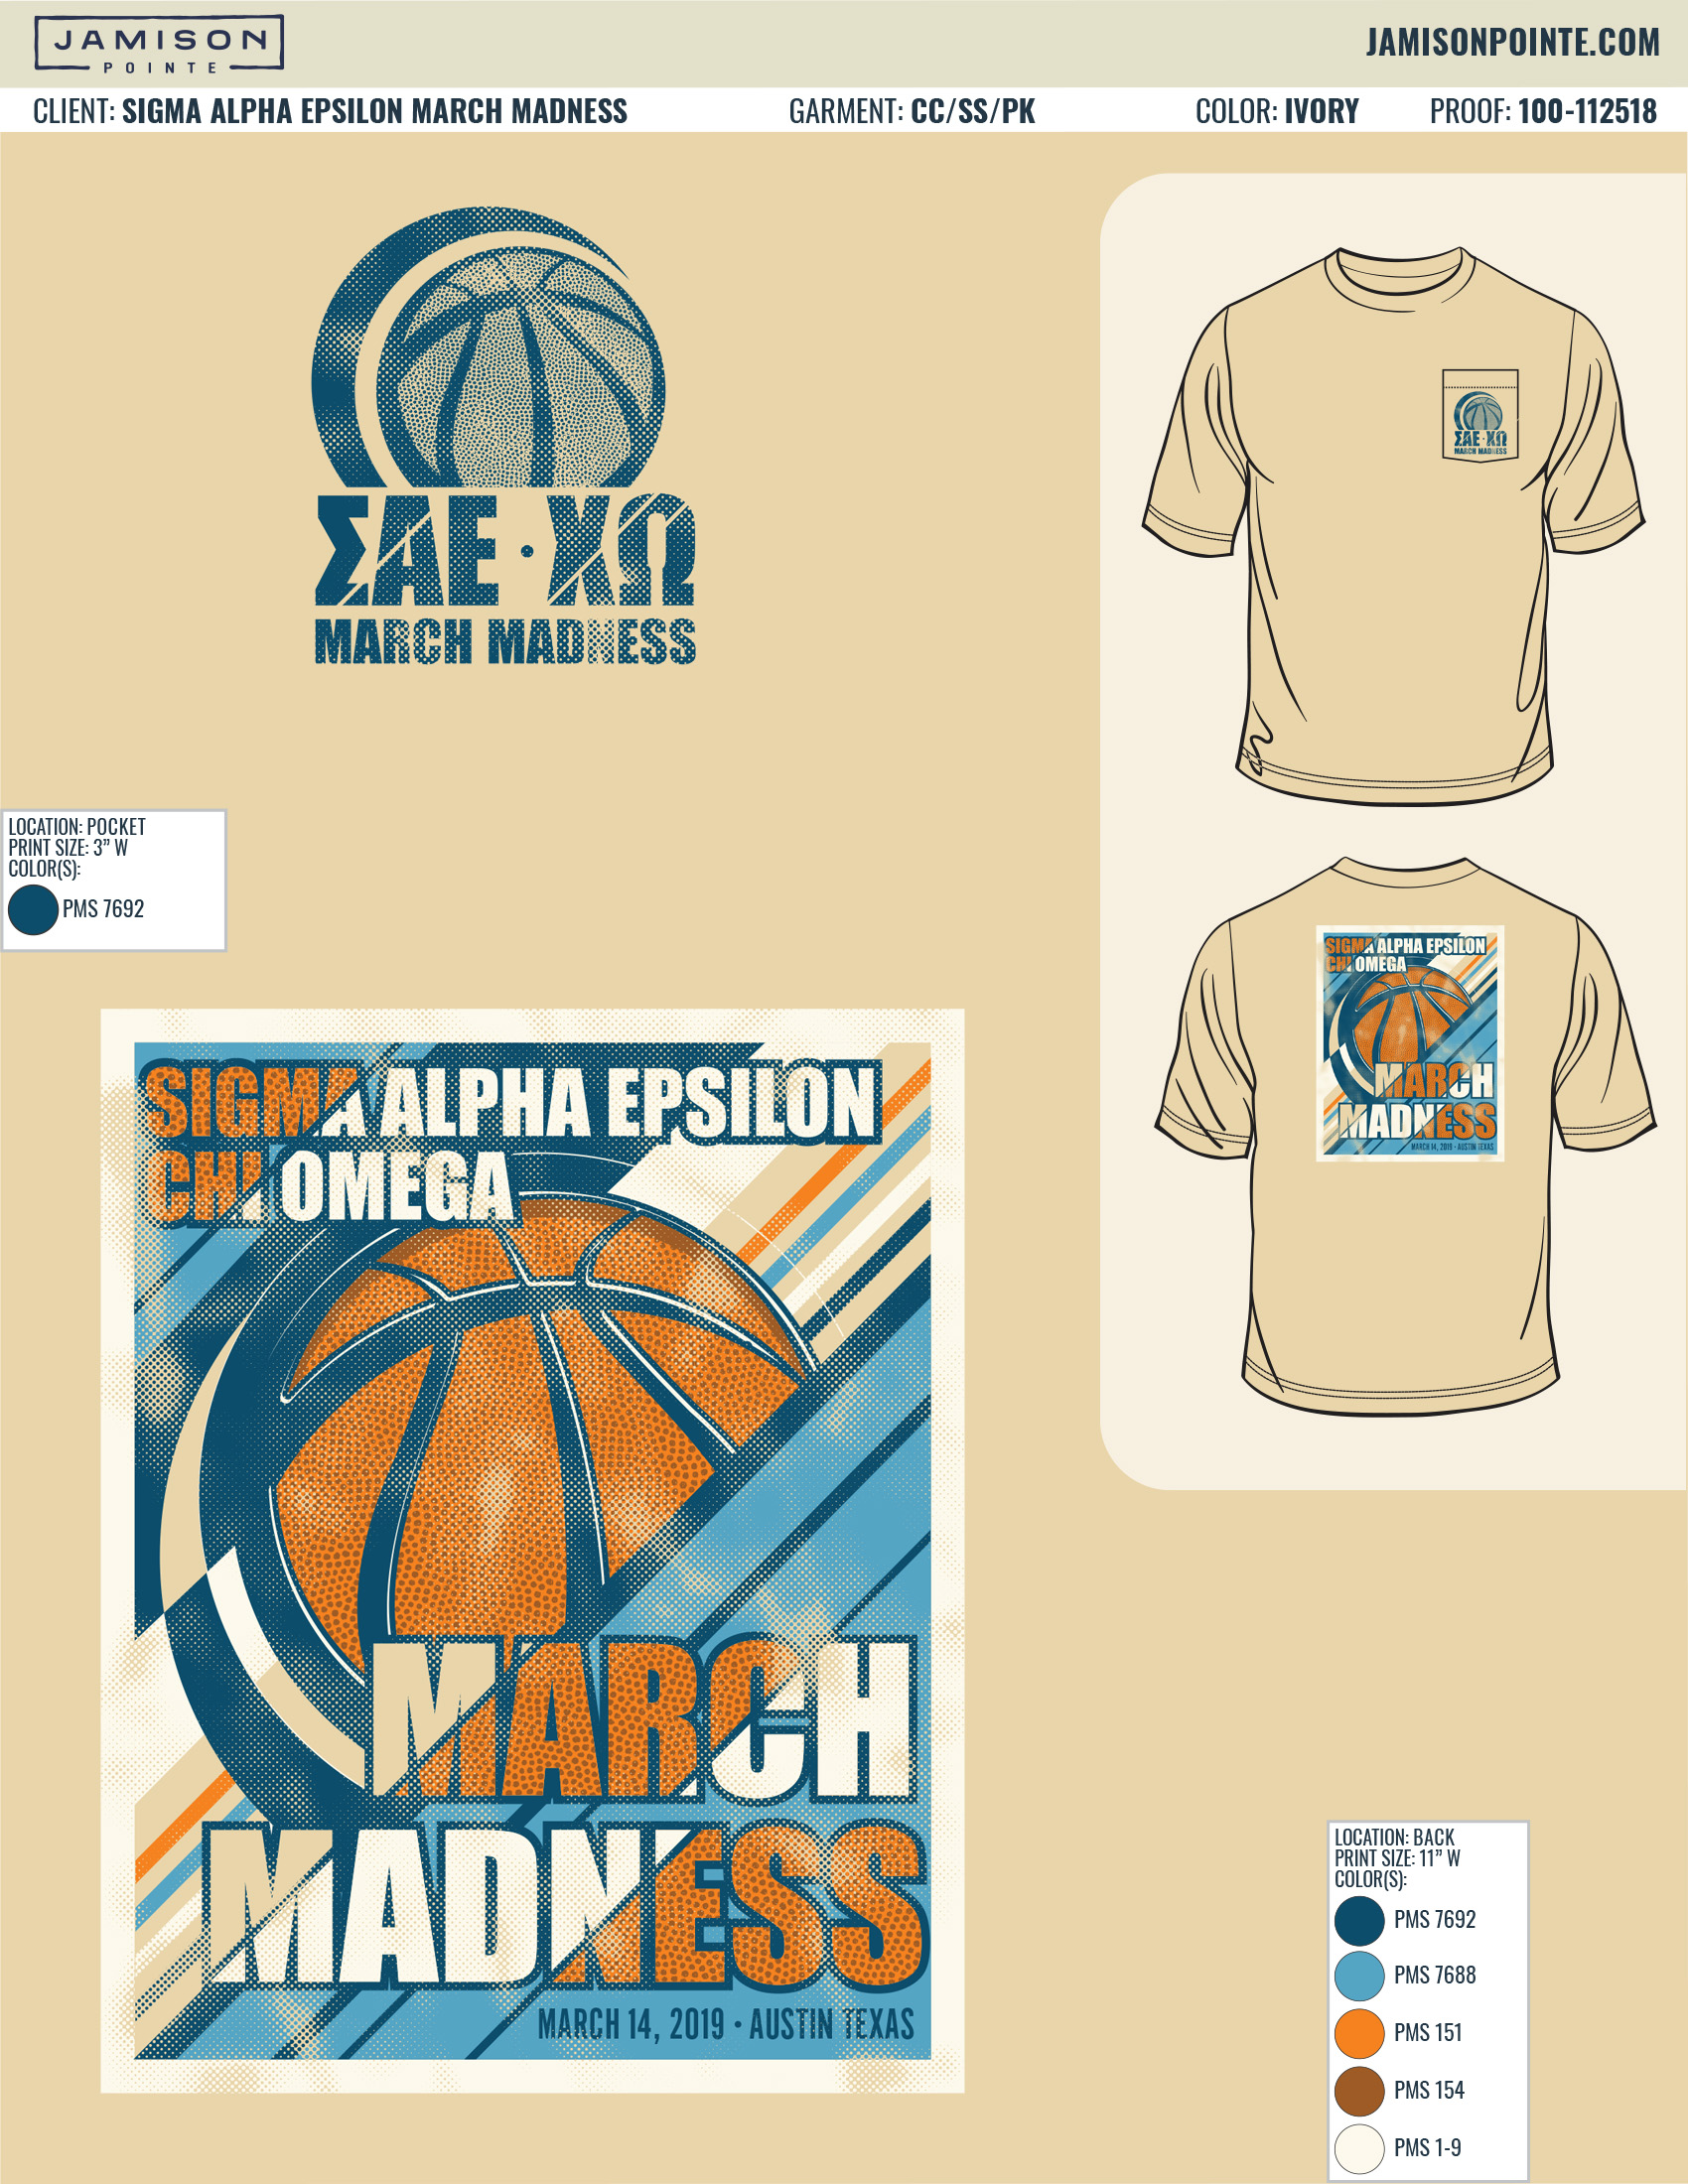 100-112518 Sigma Alpha Epsilon March Madness.jpg